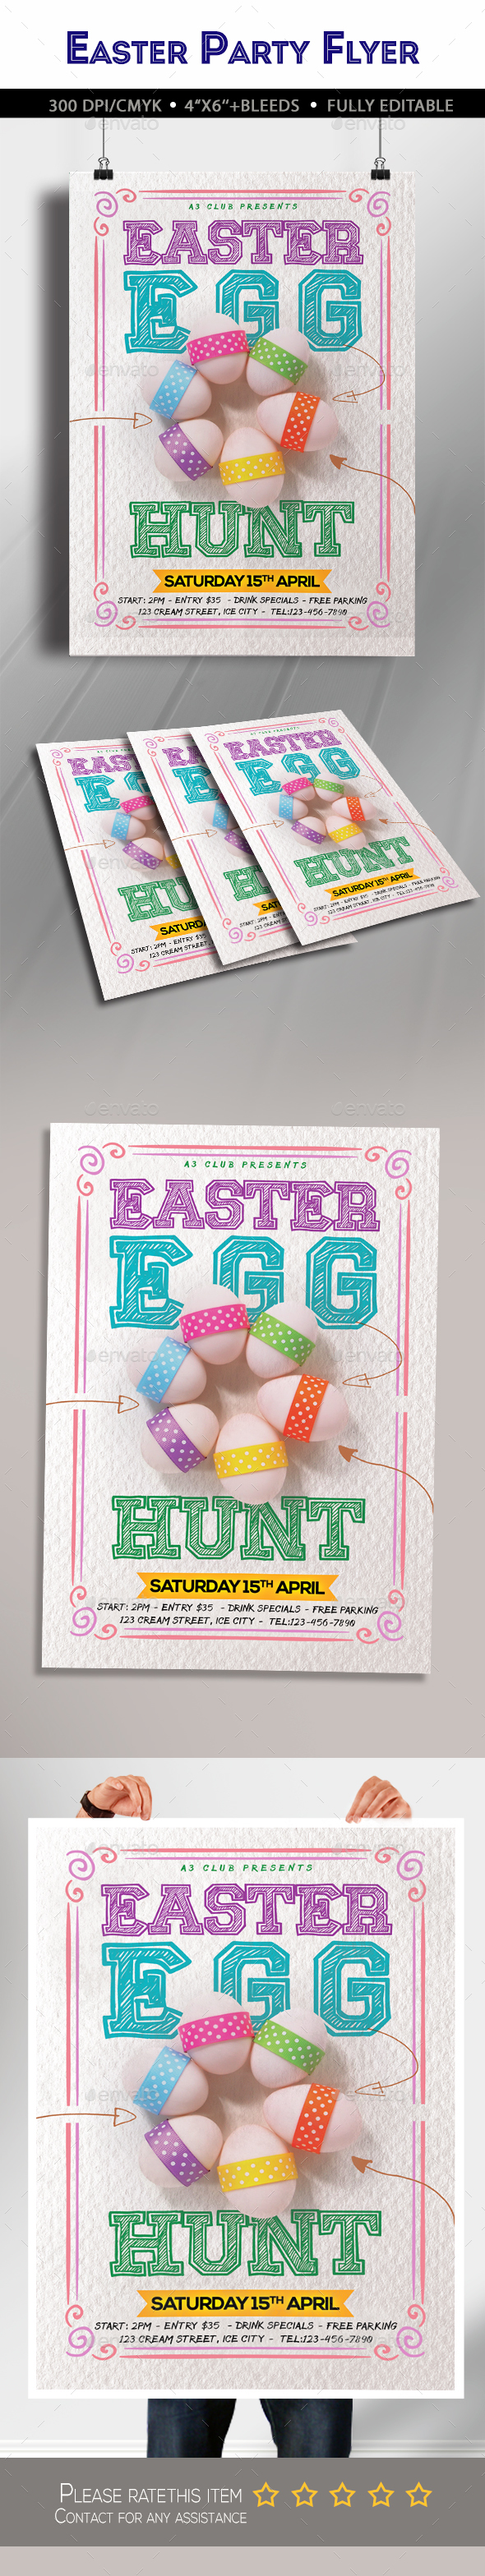 Easter Egg Hunt Flyer - Clubs & Parties Events